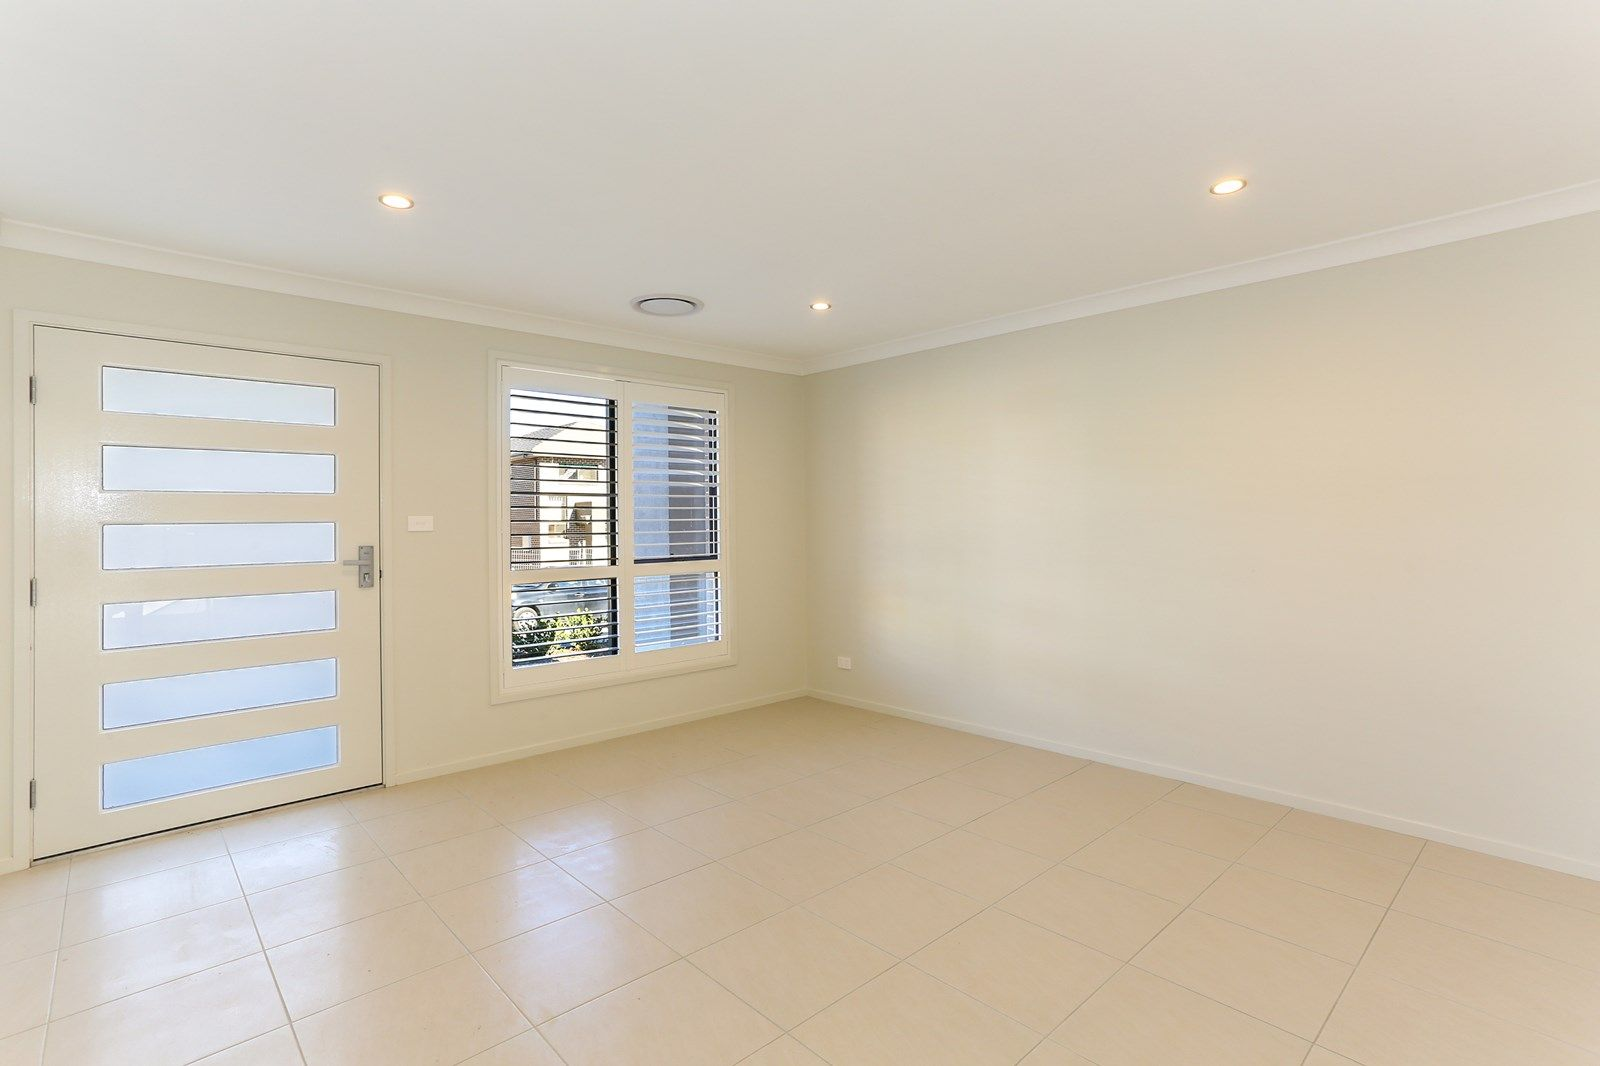 88 Fairfax St, The Ponds NSW 2769, Image 1